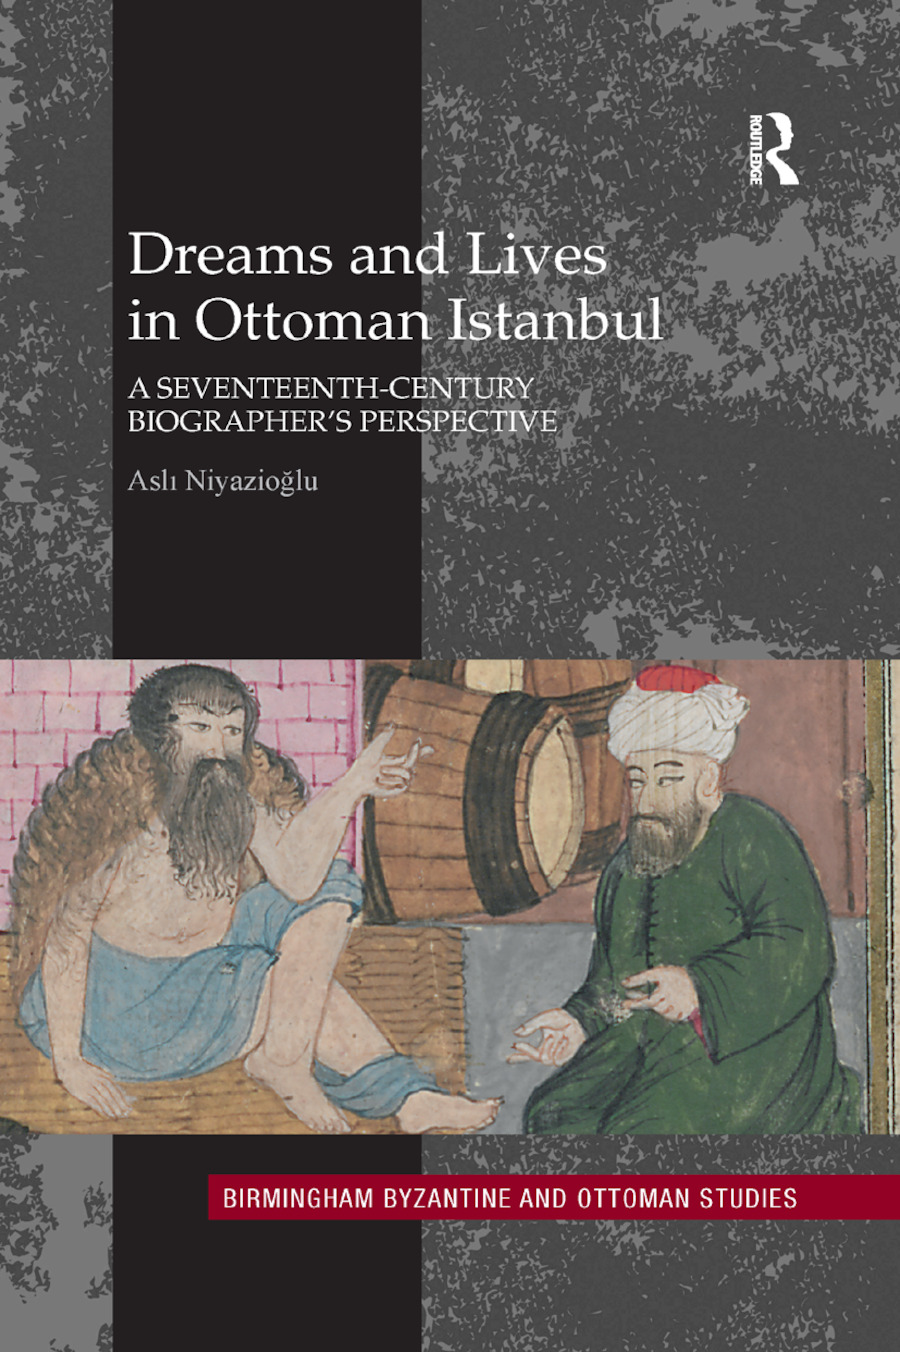 Dreams and Lives in Ottoman Istanbul: A Seventeenth-Century Biographer's Perspective book cover